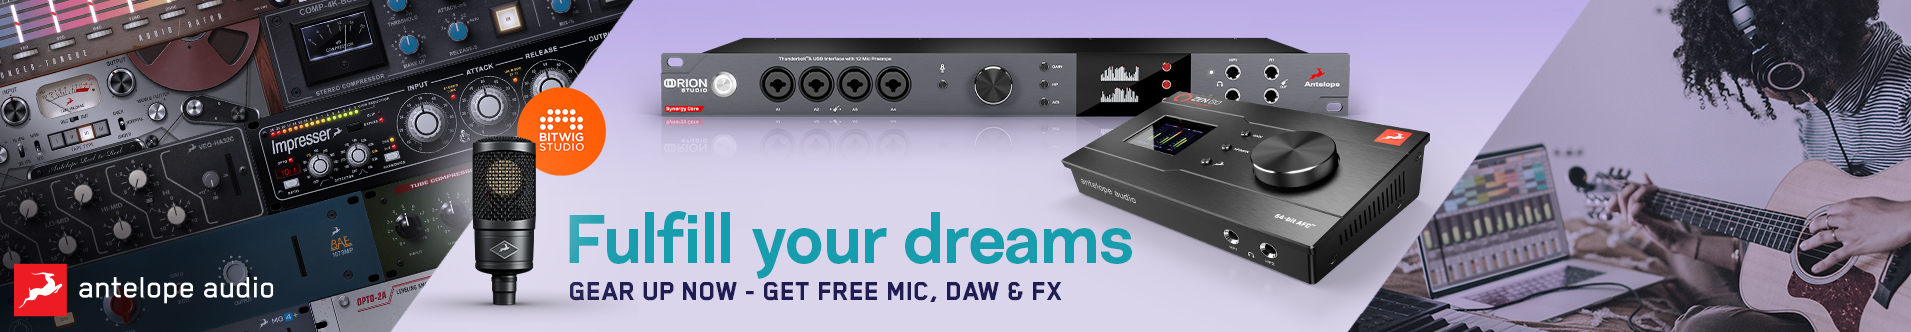 Save Big on Antelope Audio Products!